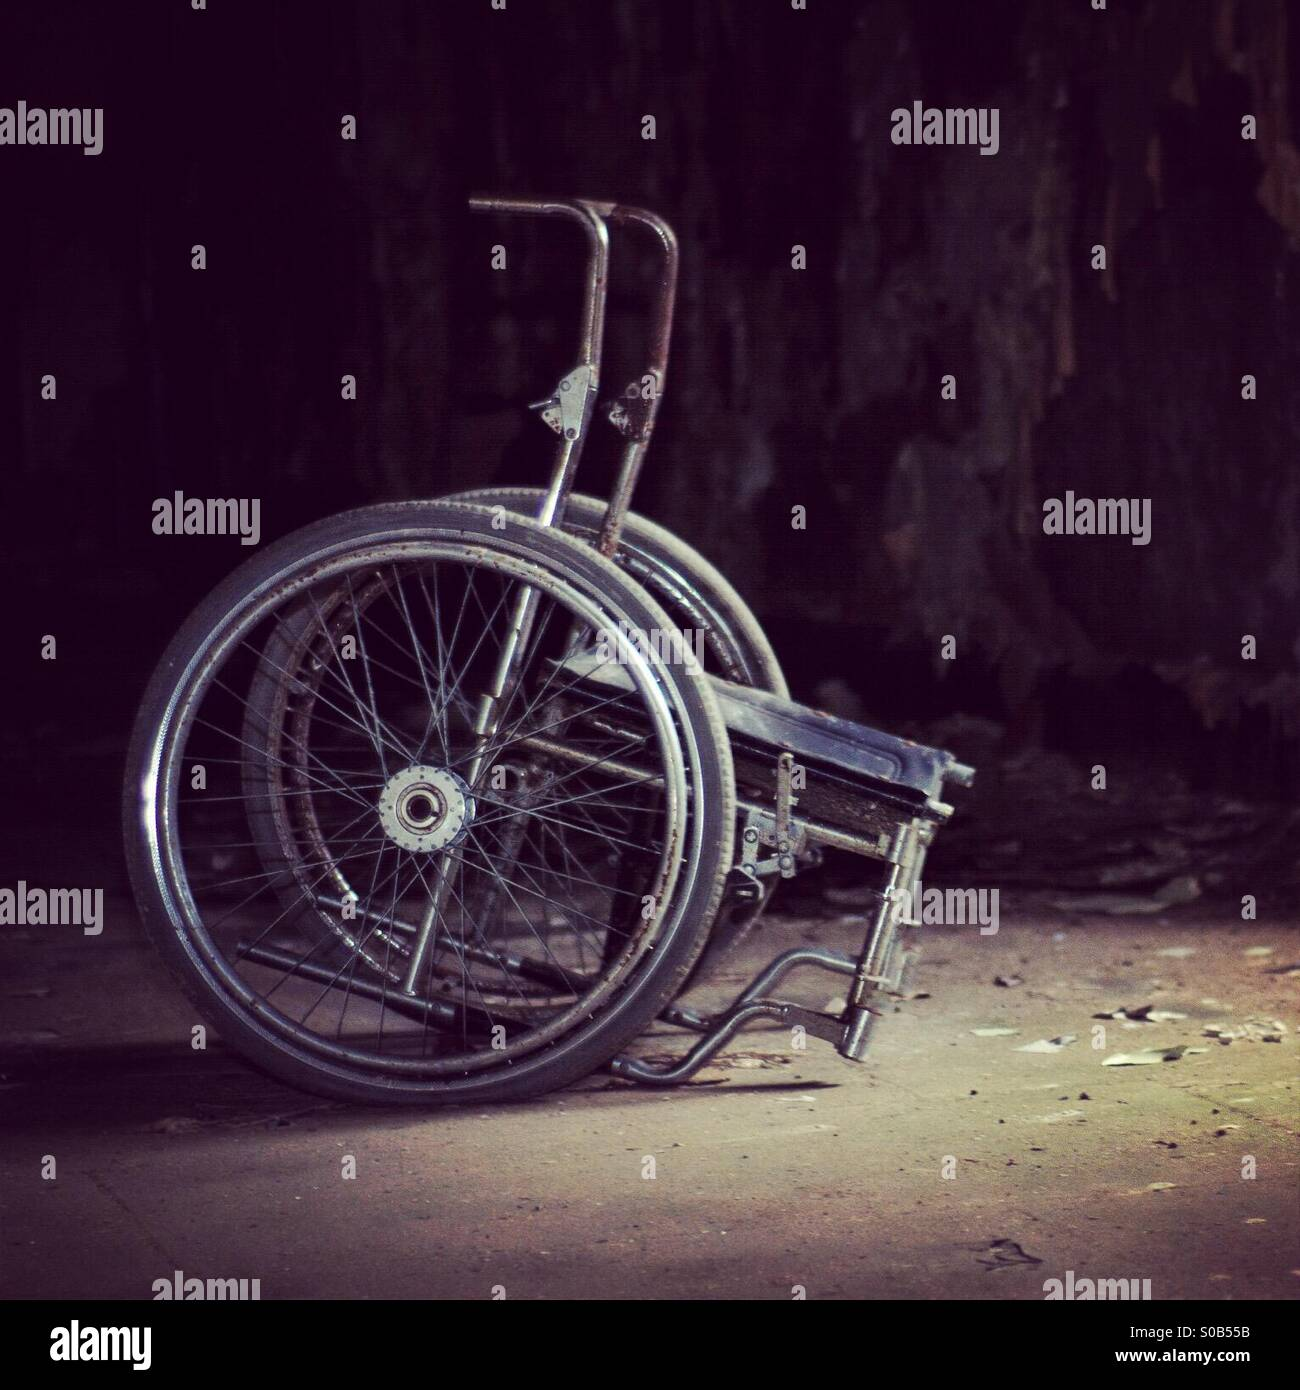 Eerie wheelchair in abandoned building - Stock Image